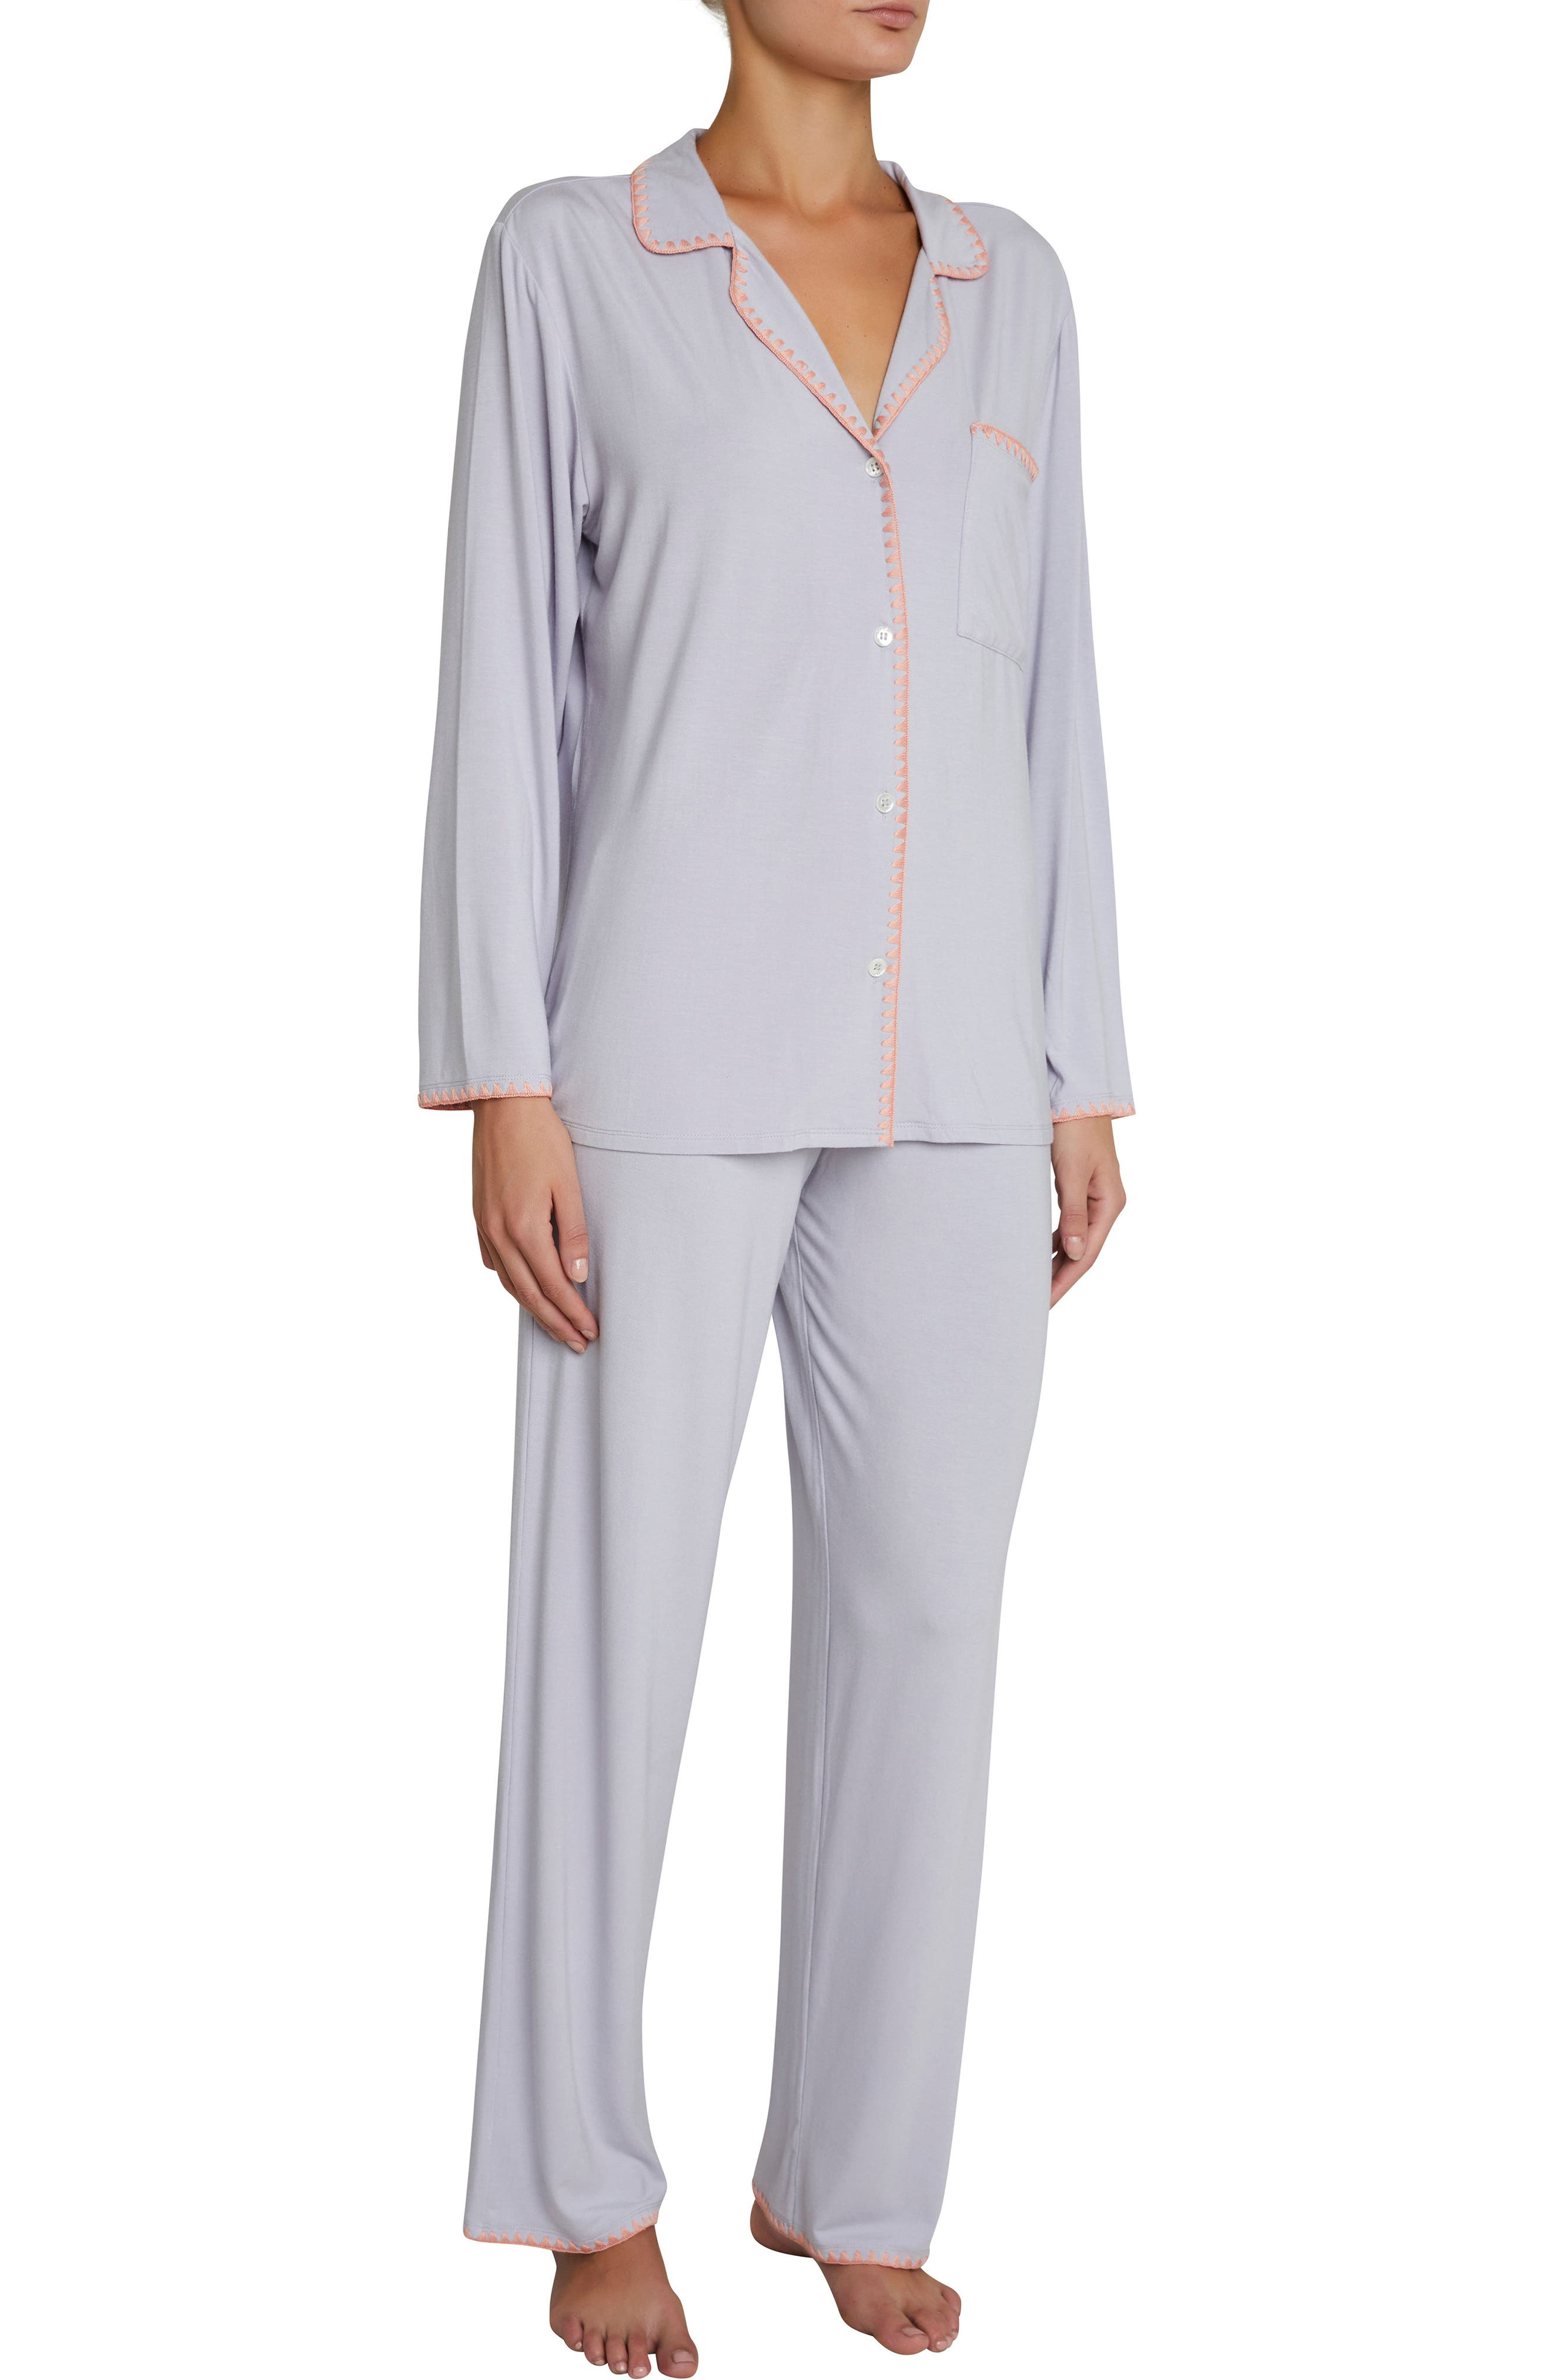 Frida the Whipstitch Pajamas,                         Main,                         color, Washed Orchid/Melocoton